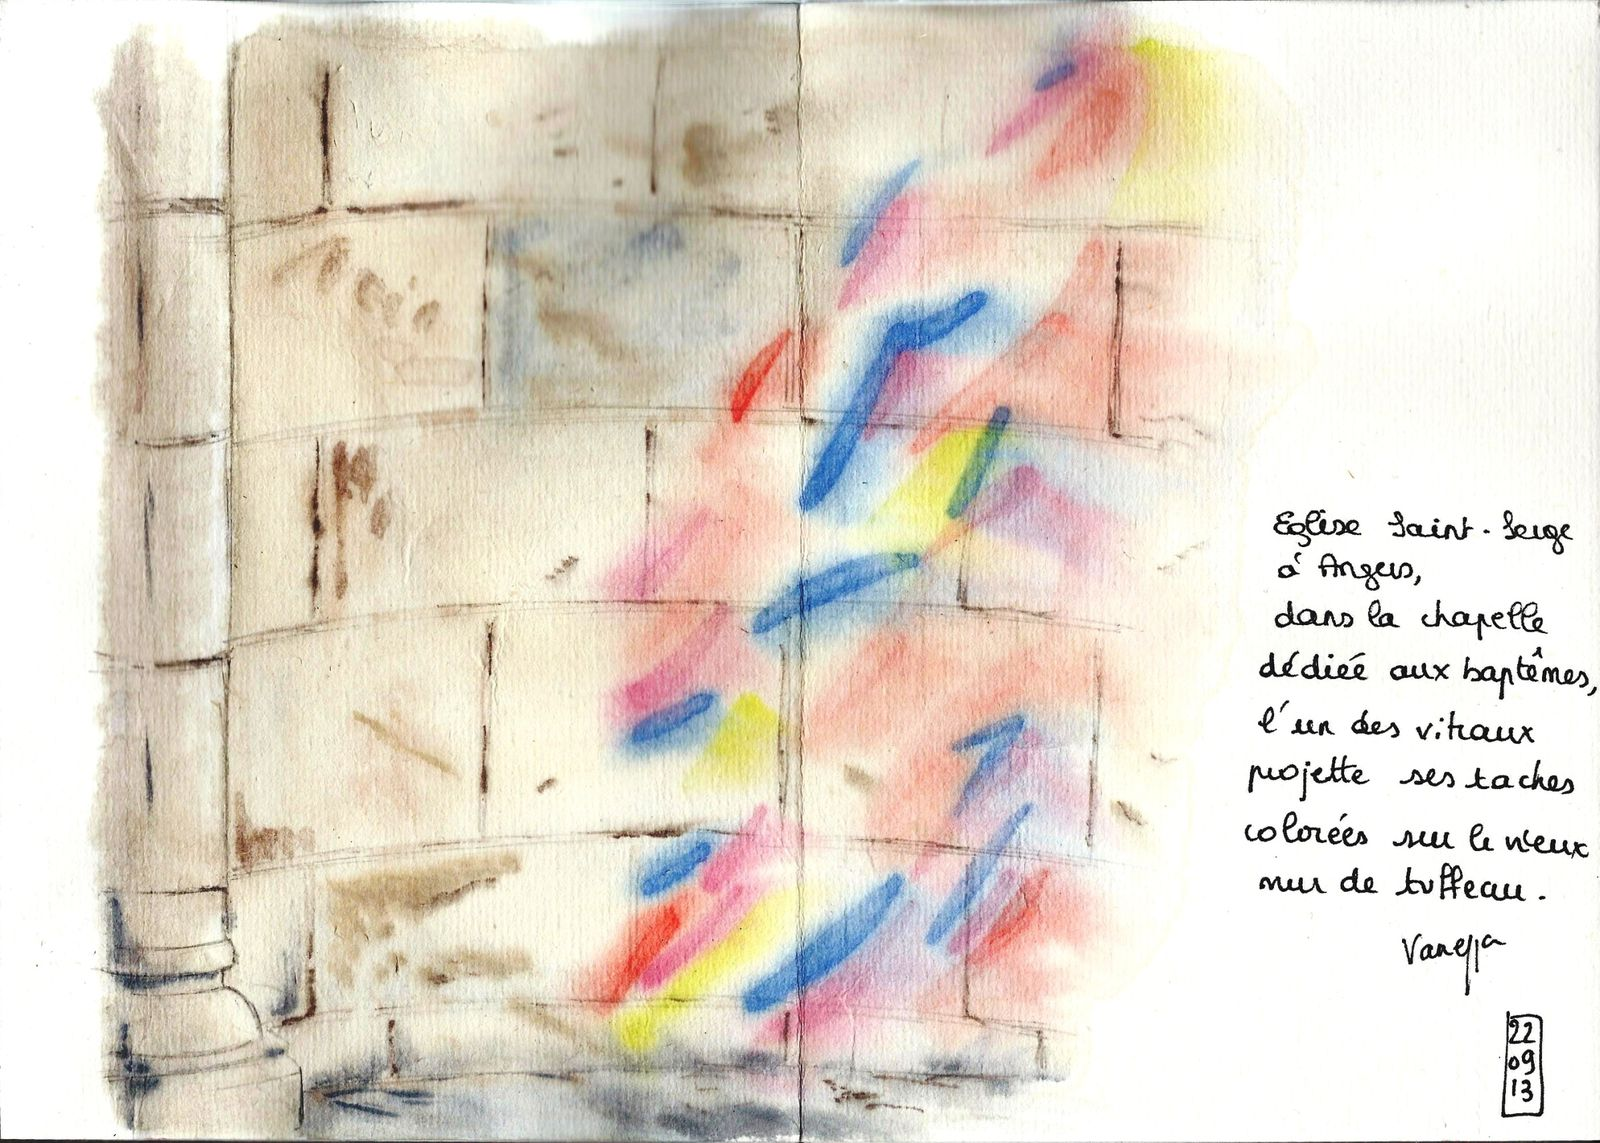 Chasse aux croquis